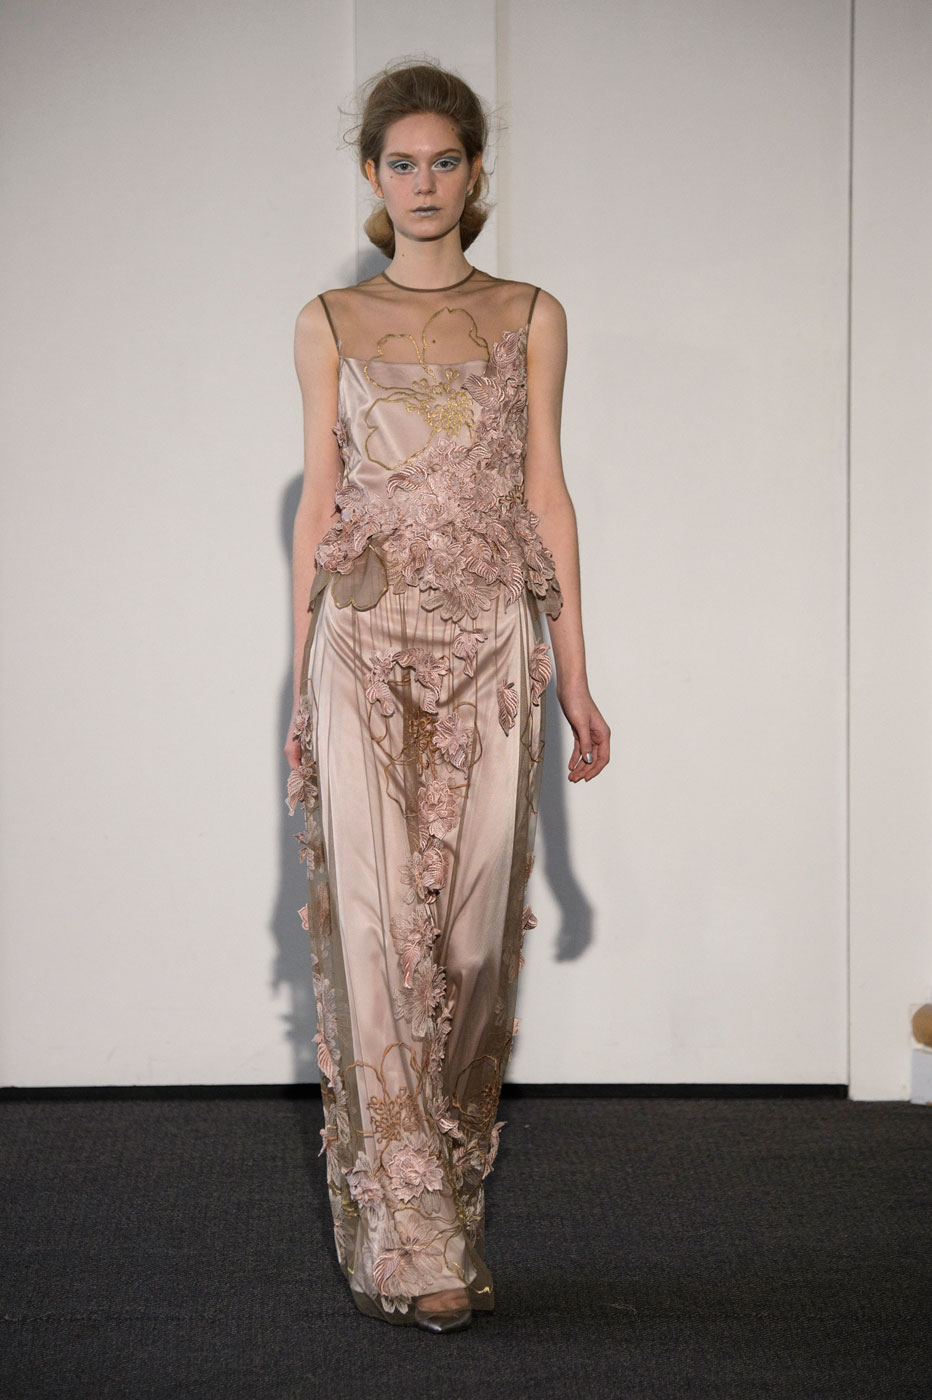 Busardi-fashion-runway-show-haute-couture-paris-spring-2015-the-impression-43